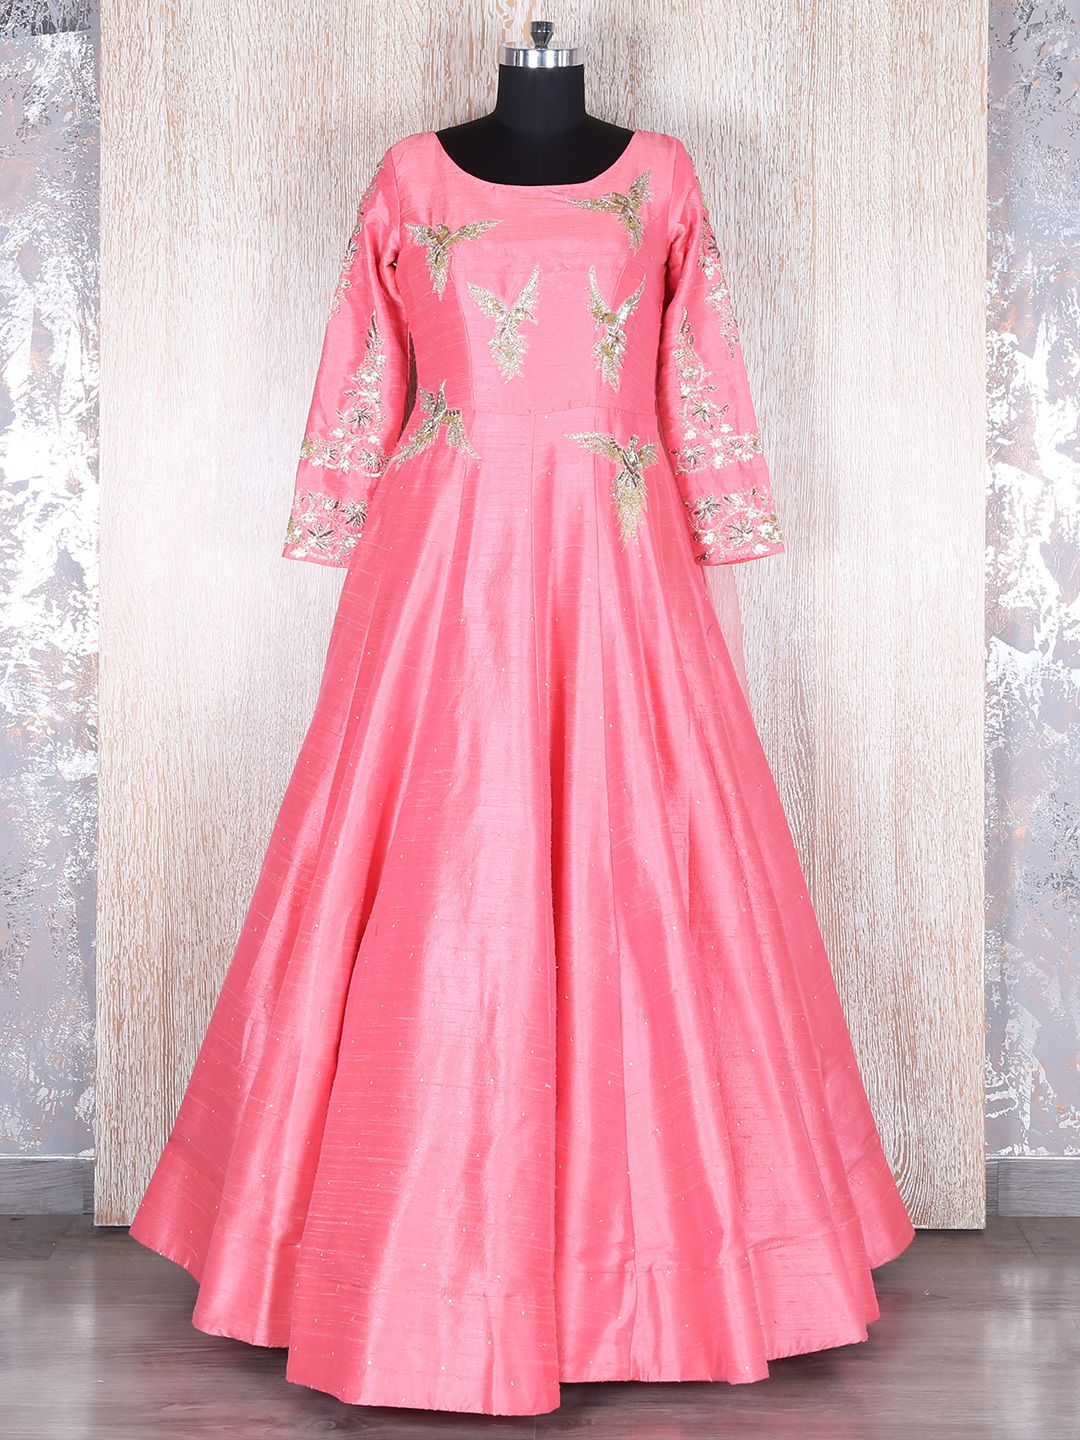 Pink Classy Silk Gown | Buy Designer Gowns at G3 Fashion | Pinterest